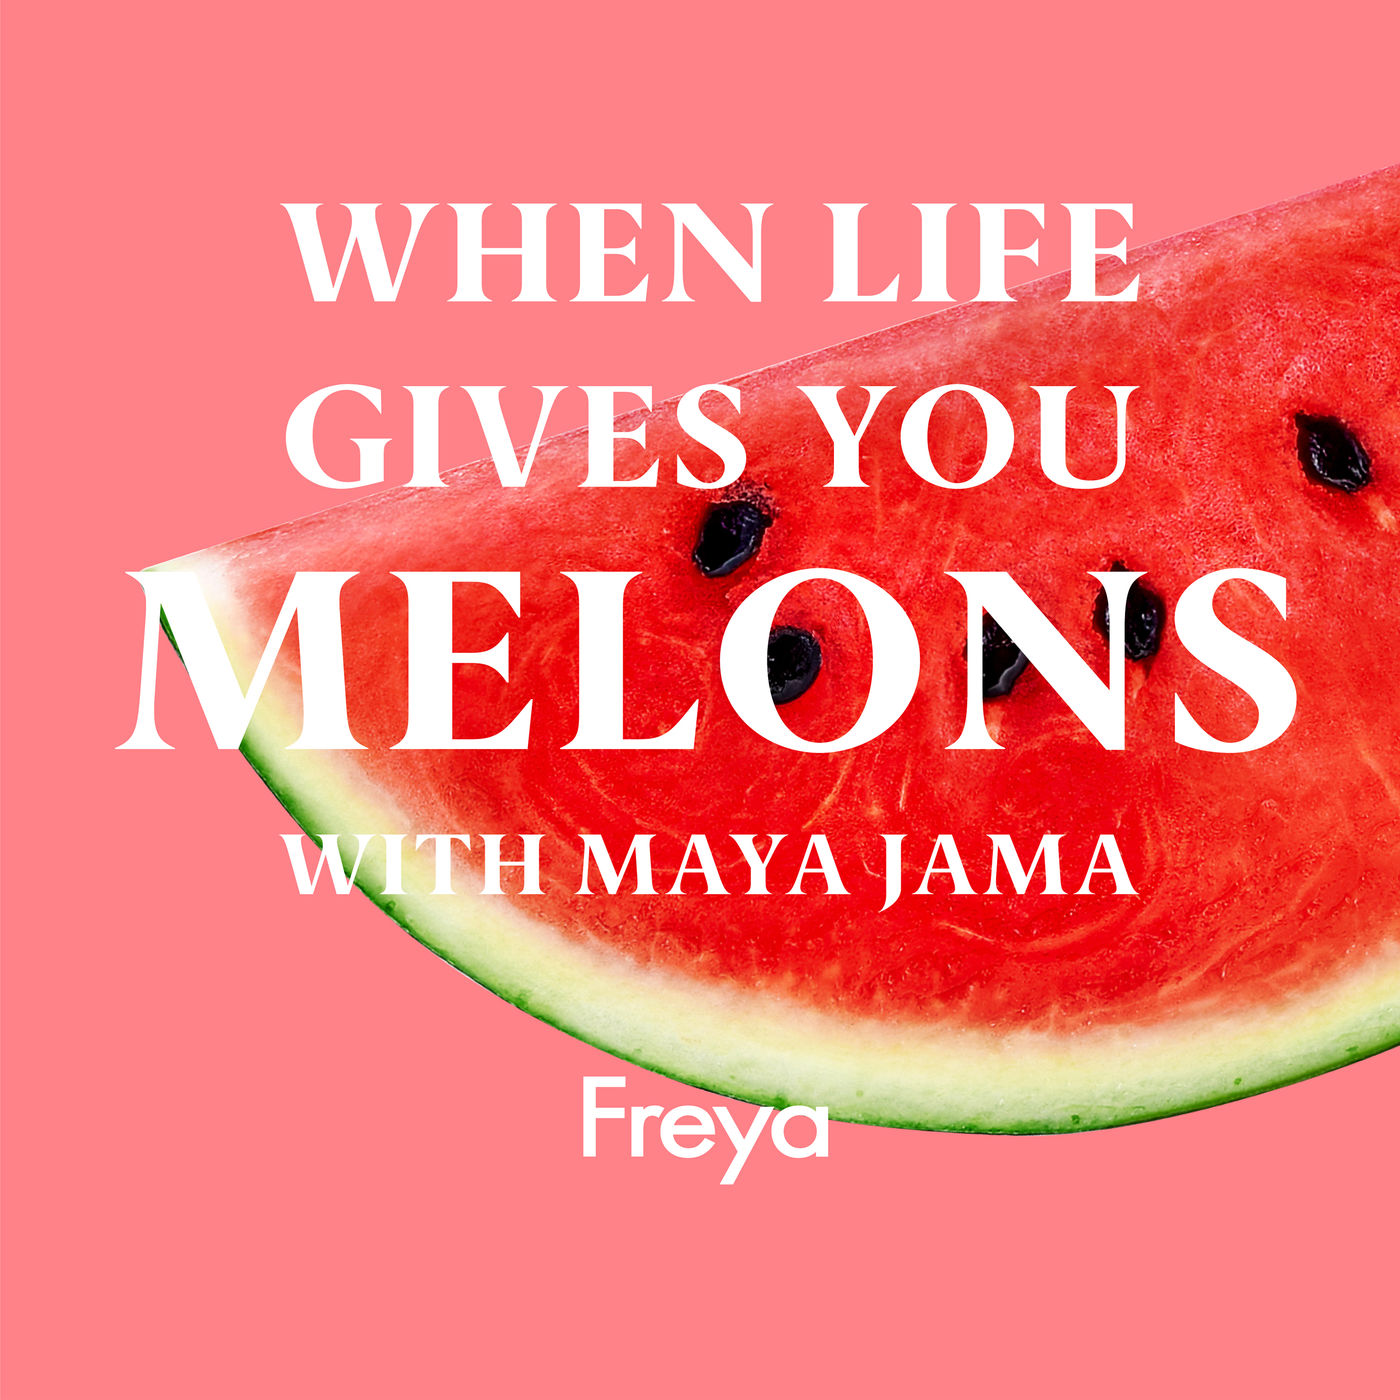 """When Life Gives You Melons Ep.05 - """"Would people be happier without social media? Are coffee enemas a good idea? Tune in to hear Maya Jama talking mental and physical well-being with Laura Whitmore, Melissa Hemsley and Annie Clark."""""""